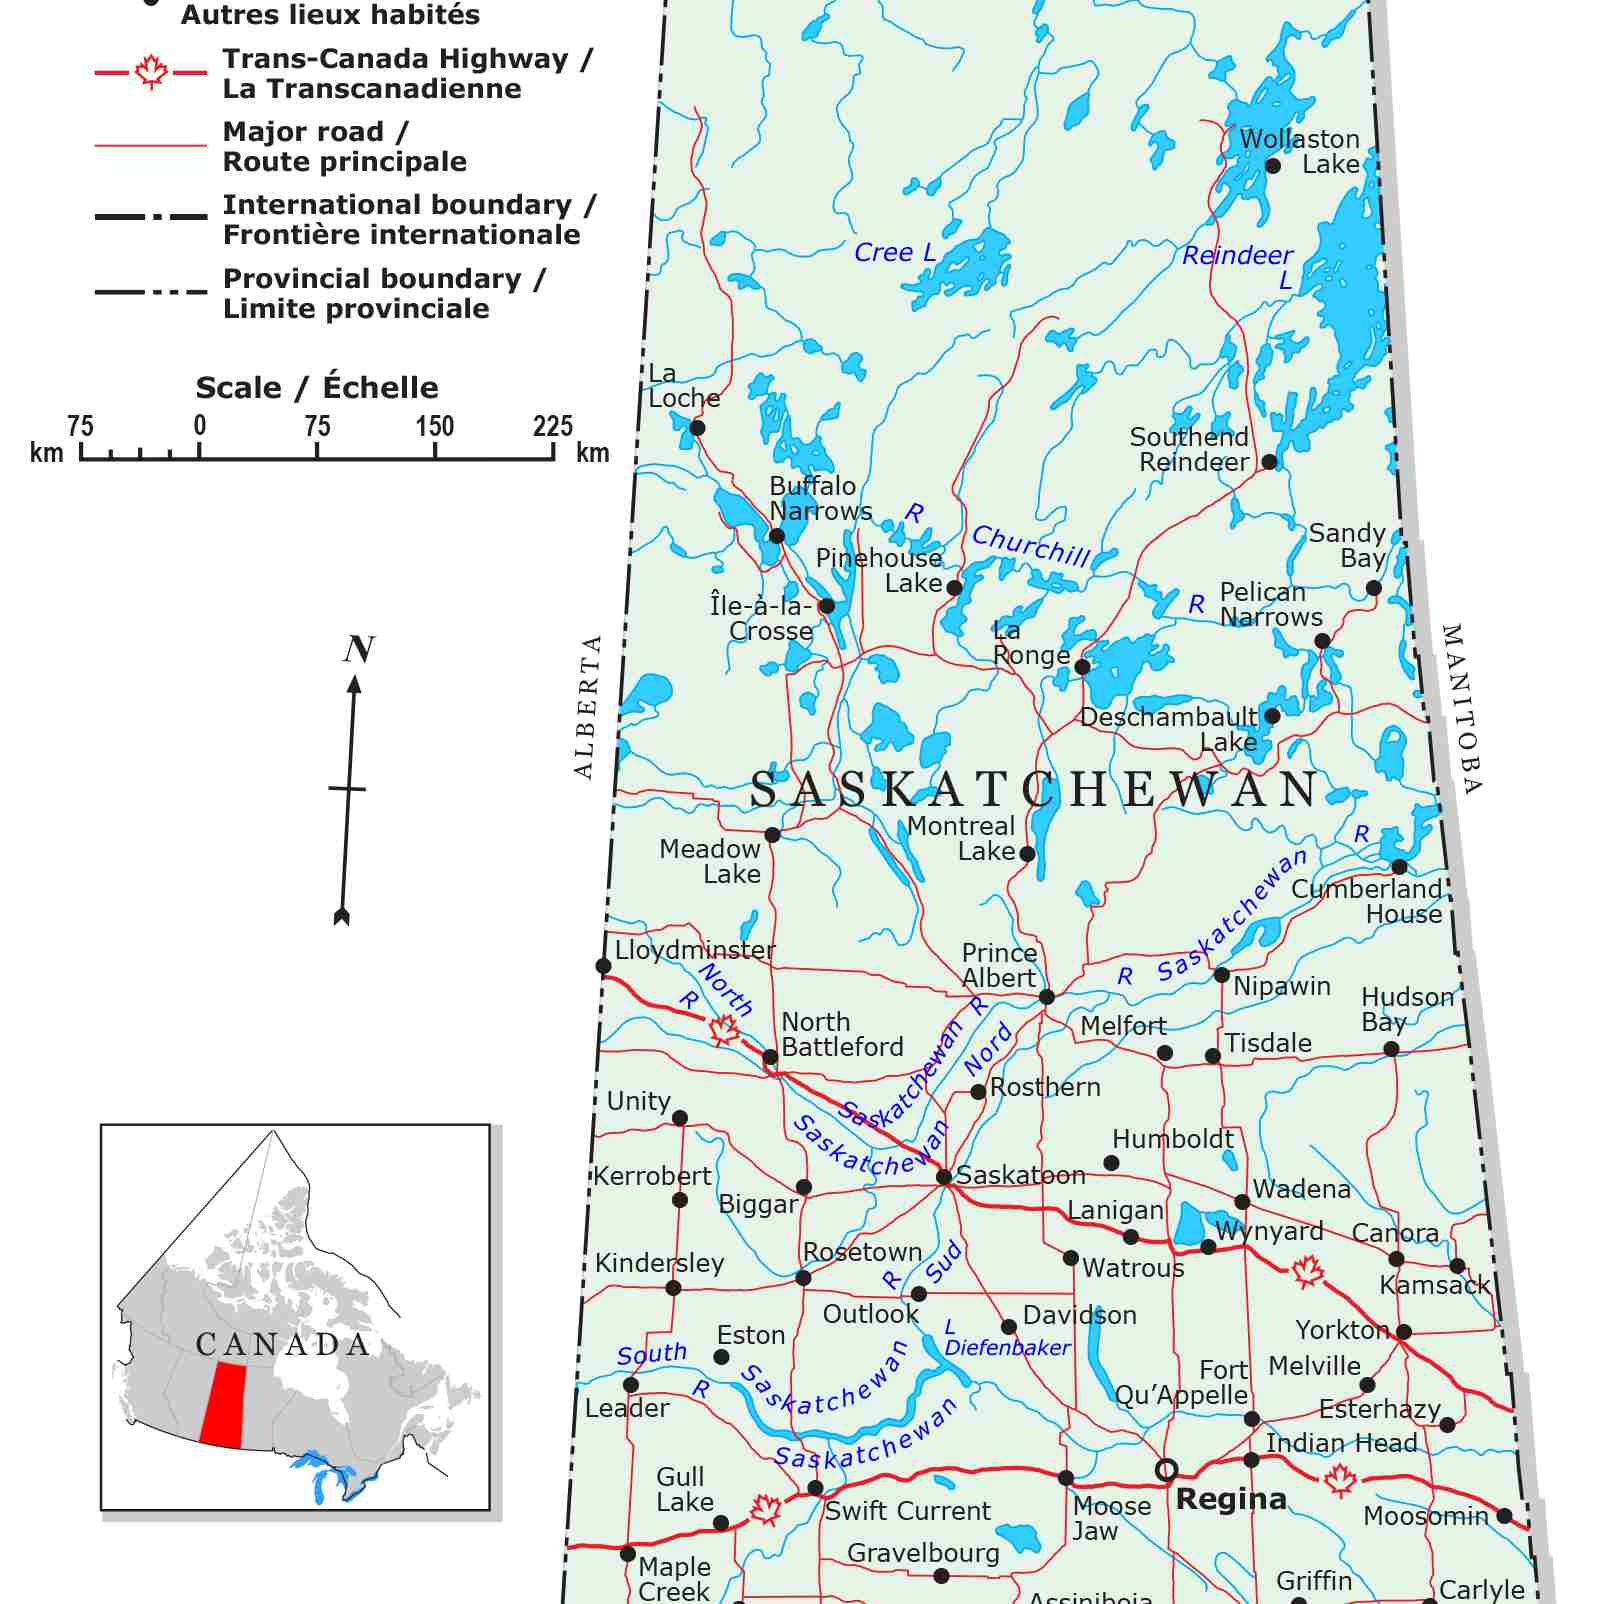 Outline Map Of Canada With Provinces And Capitals.Guide To Canadian Provinces And Territories